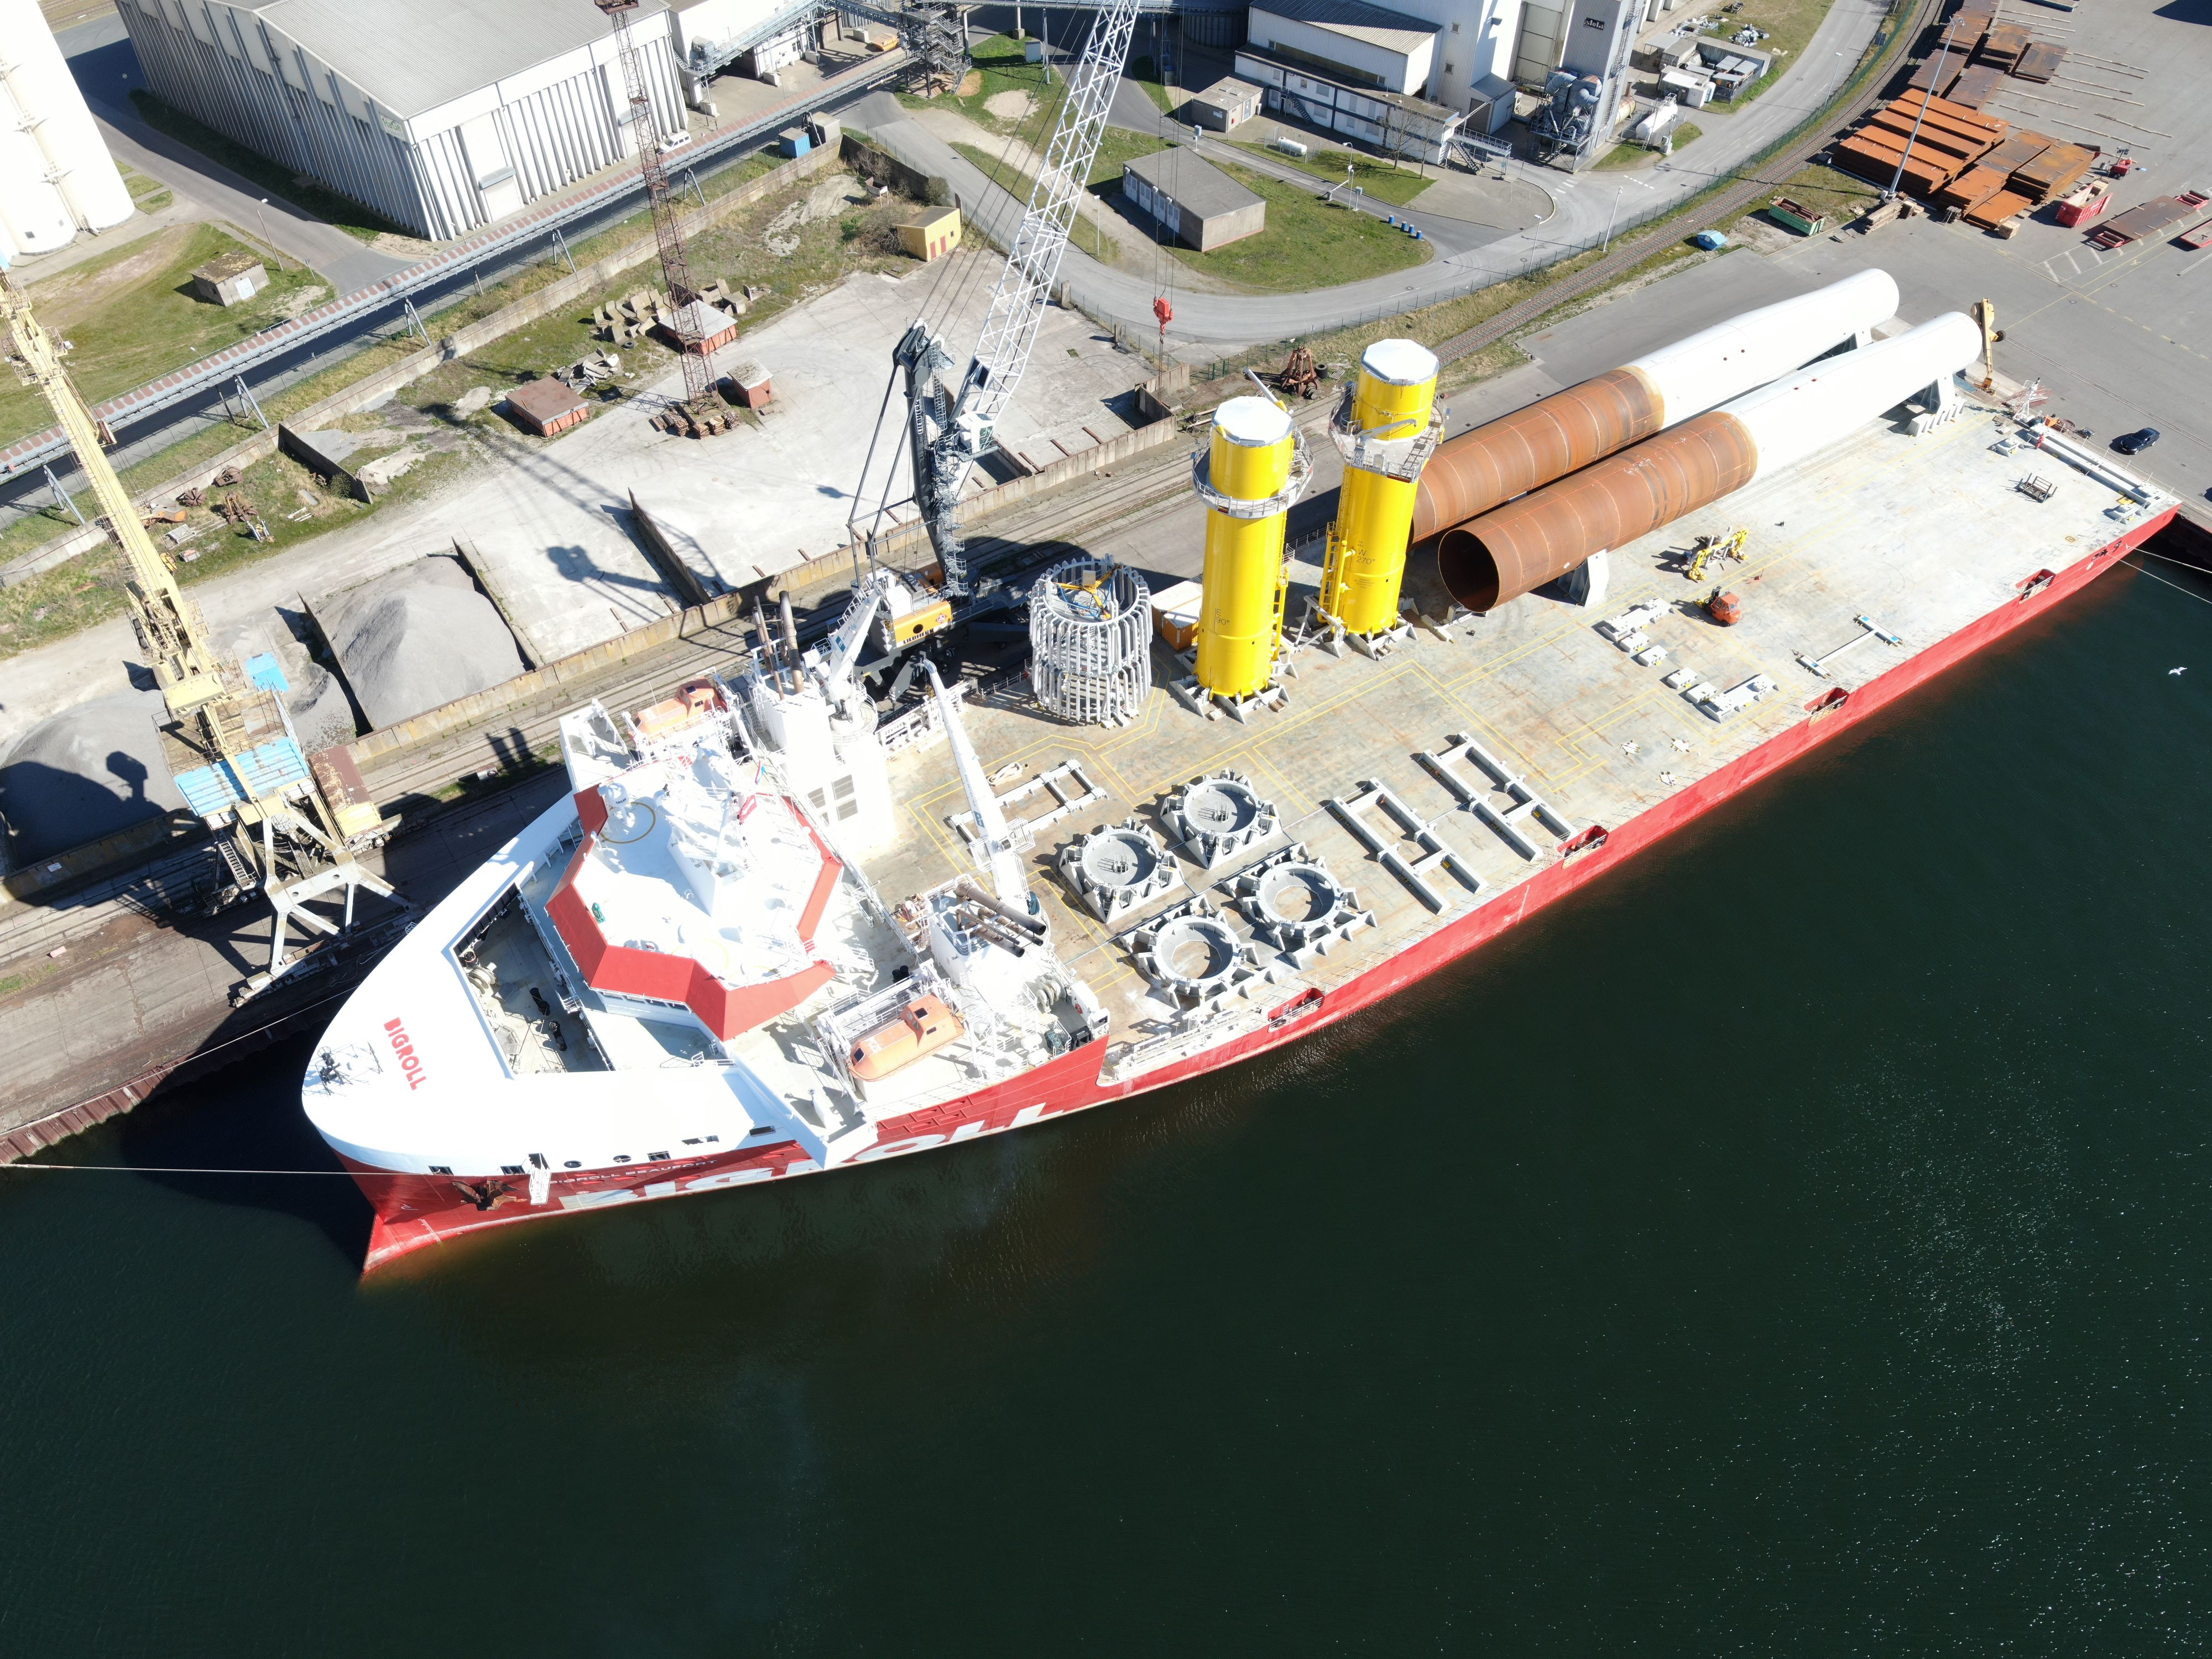 Loadout of the two monopiles and transition pieces at EEW SPC quay in Rostock.